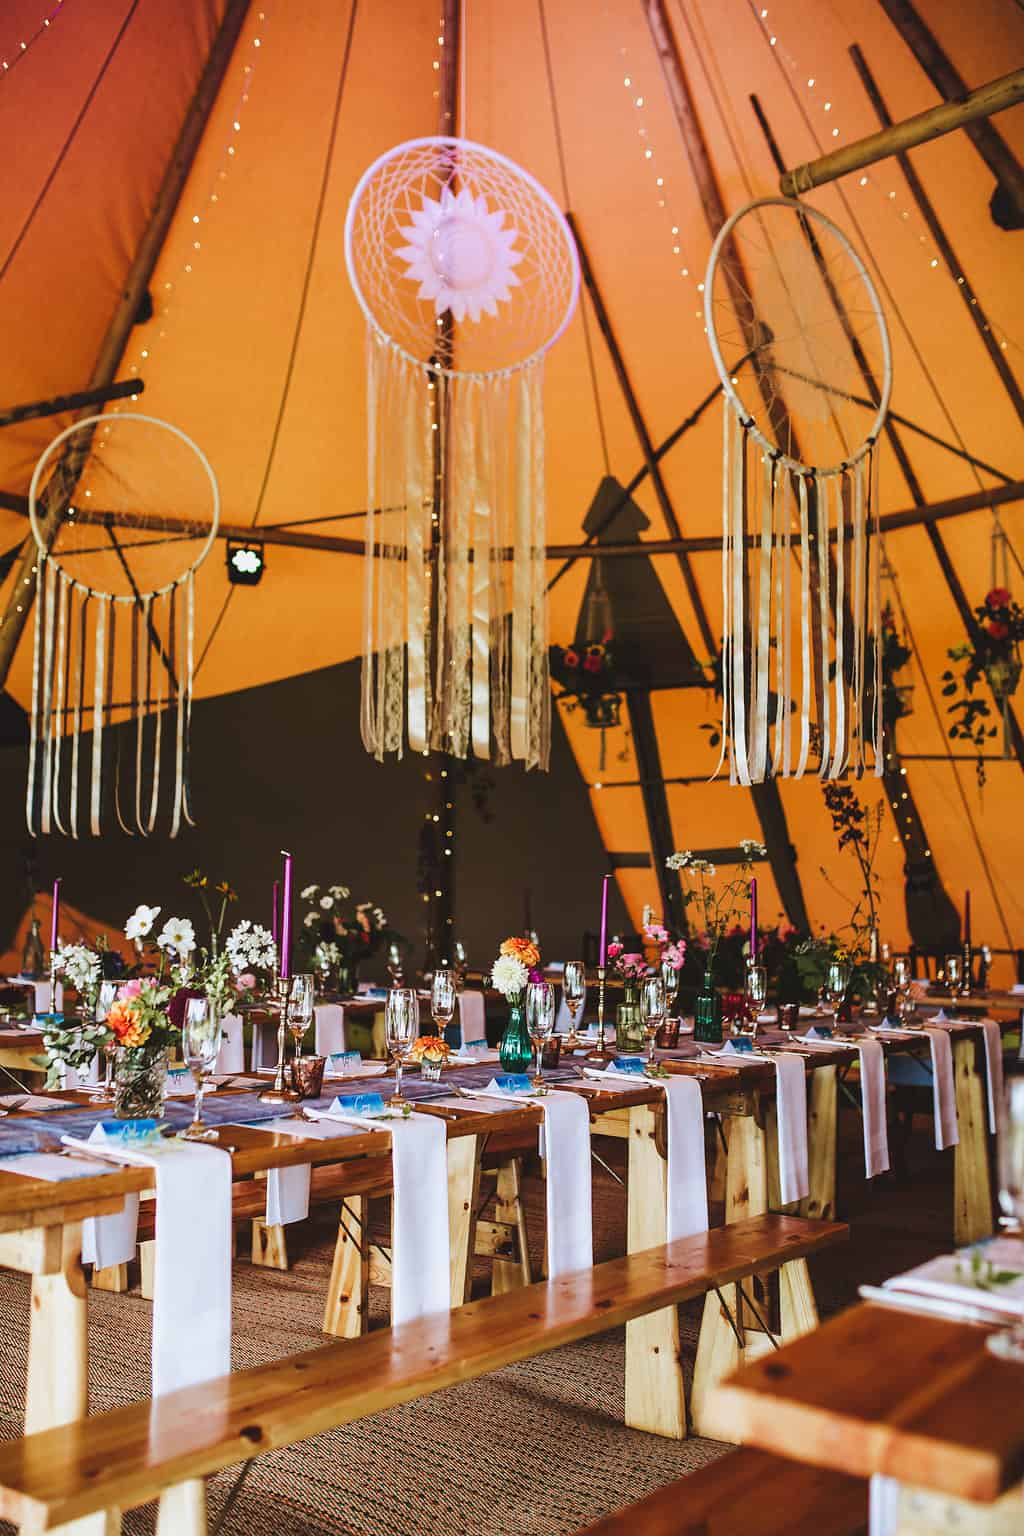 Giant Dream Catchers - Sami Tipi Wedding Table Scape